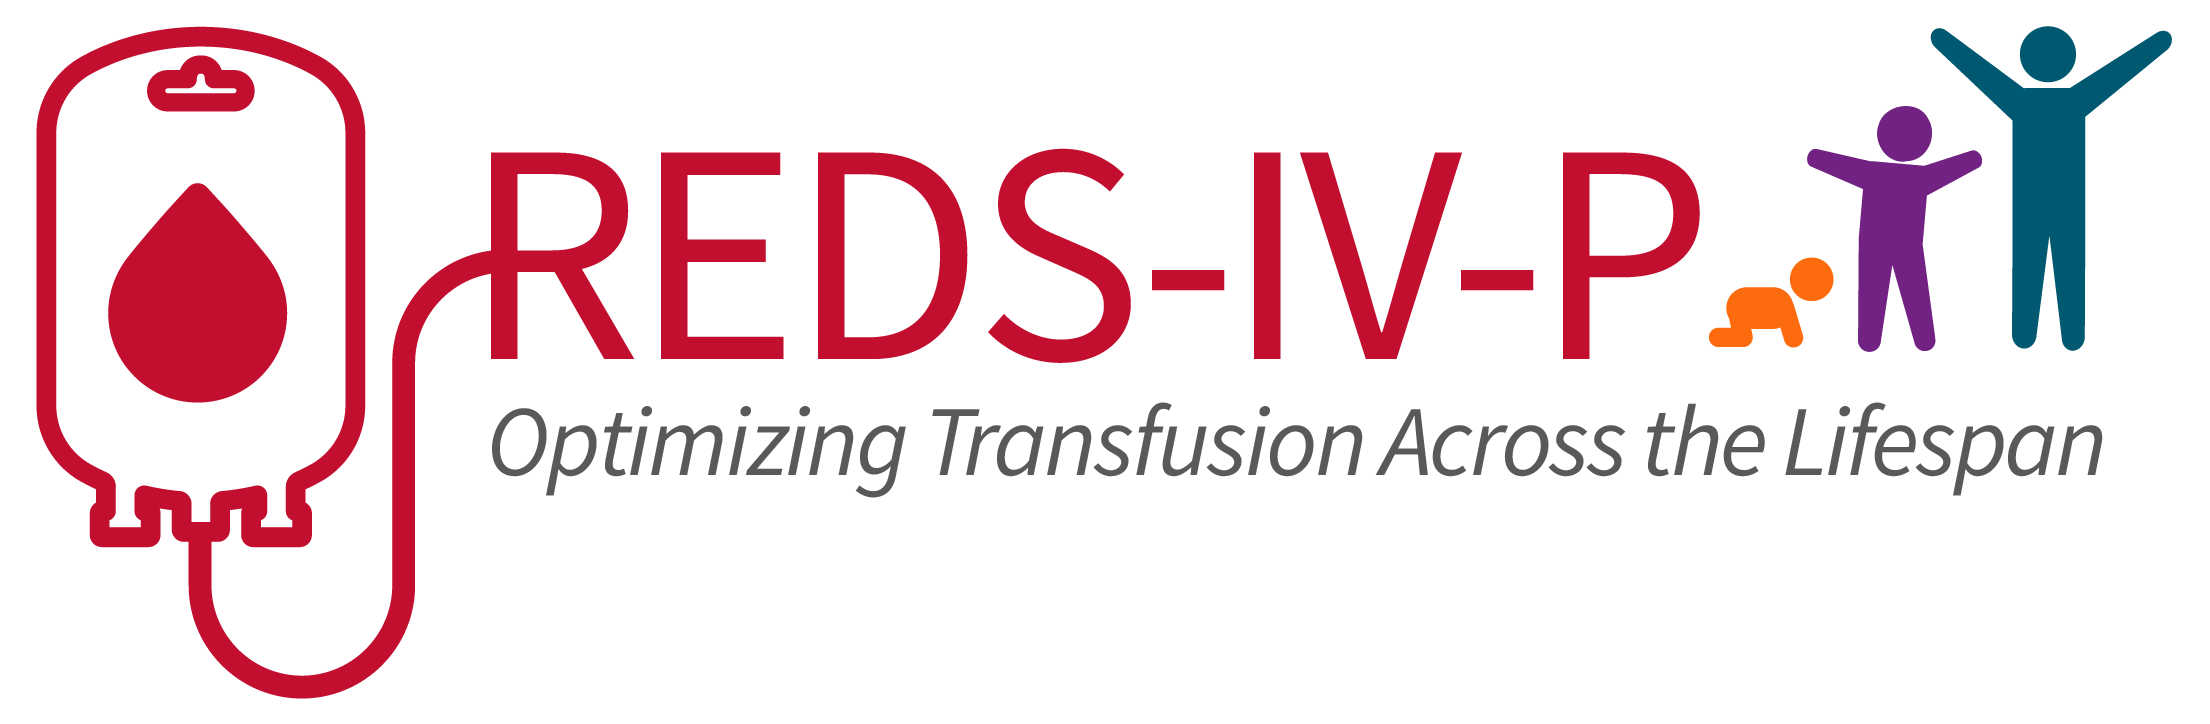 REDS-IV-P Optimizing Transfusion Across the Lifespan - Login Page